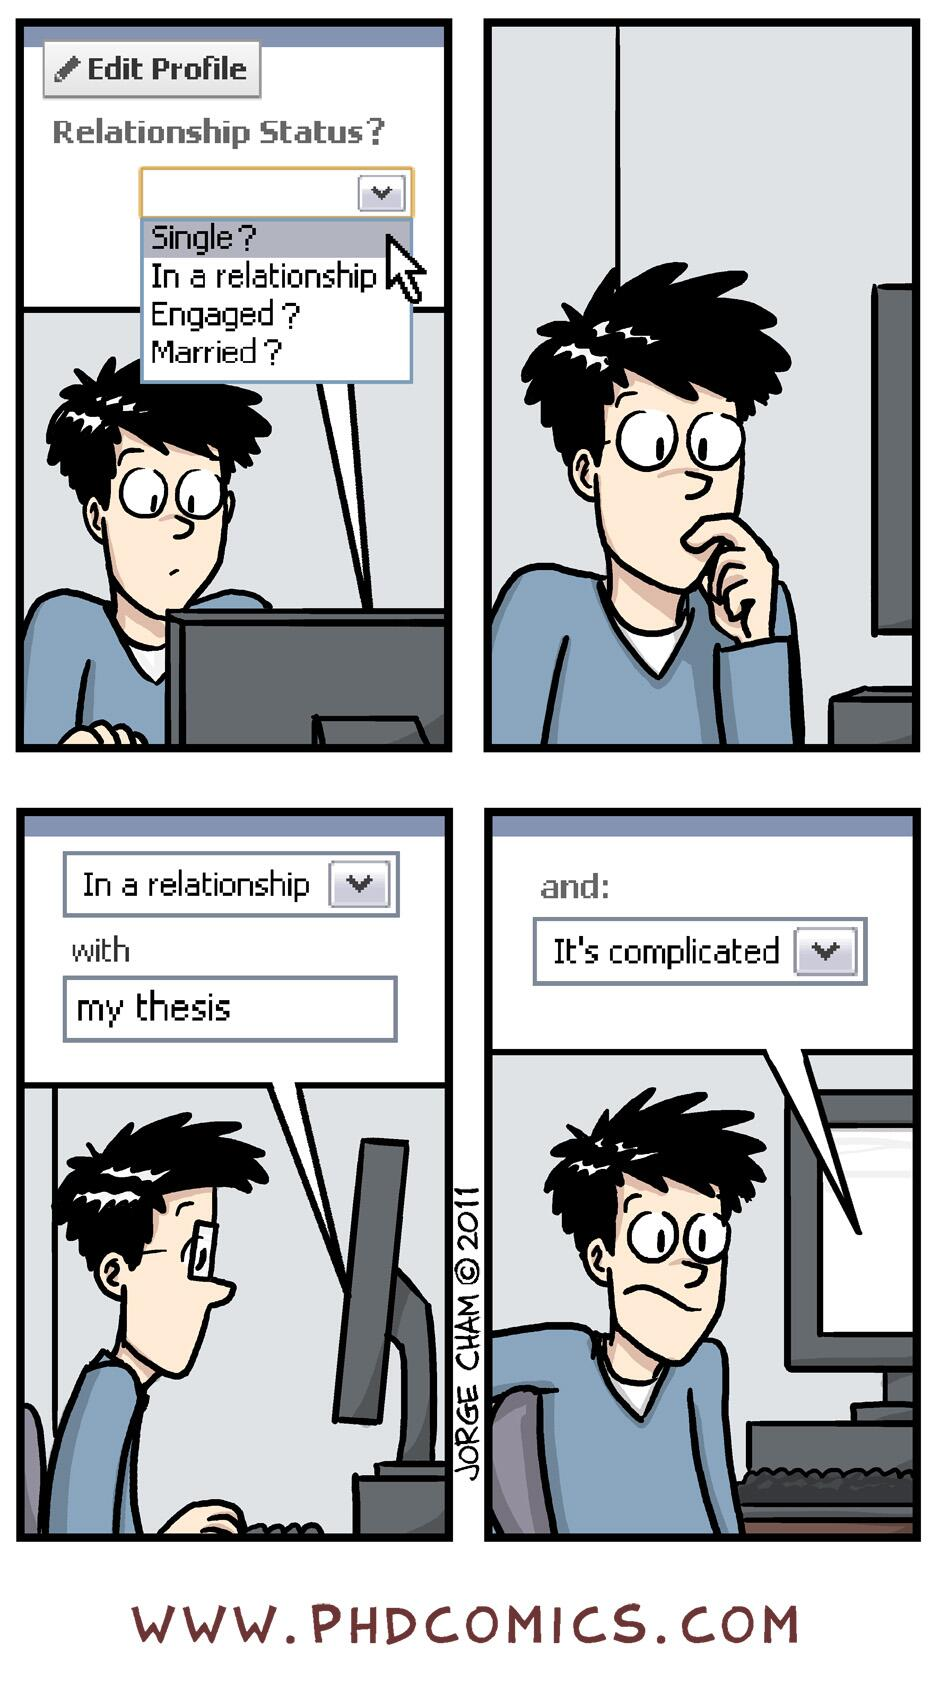 Thesis marriage phd comics psychology externship cover letter sample